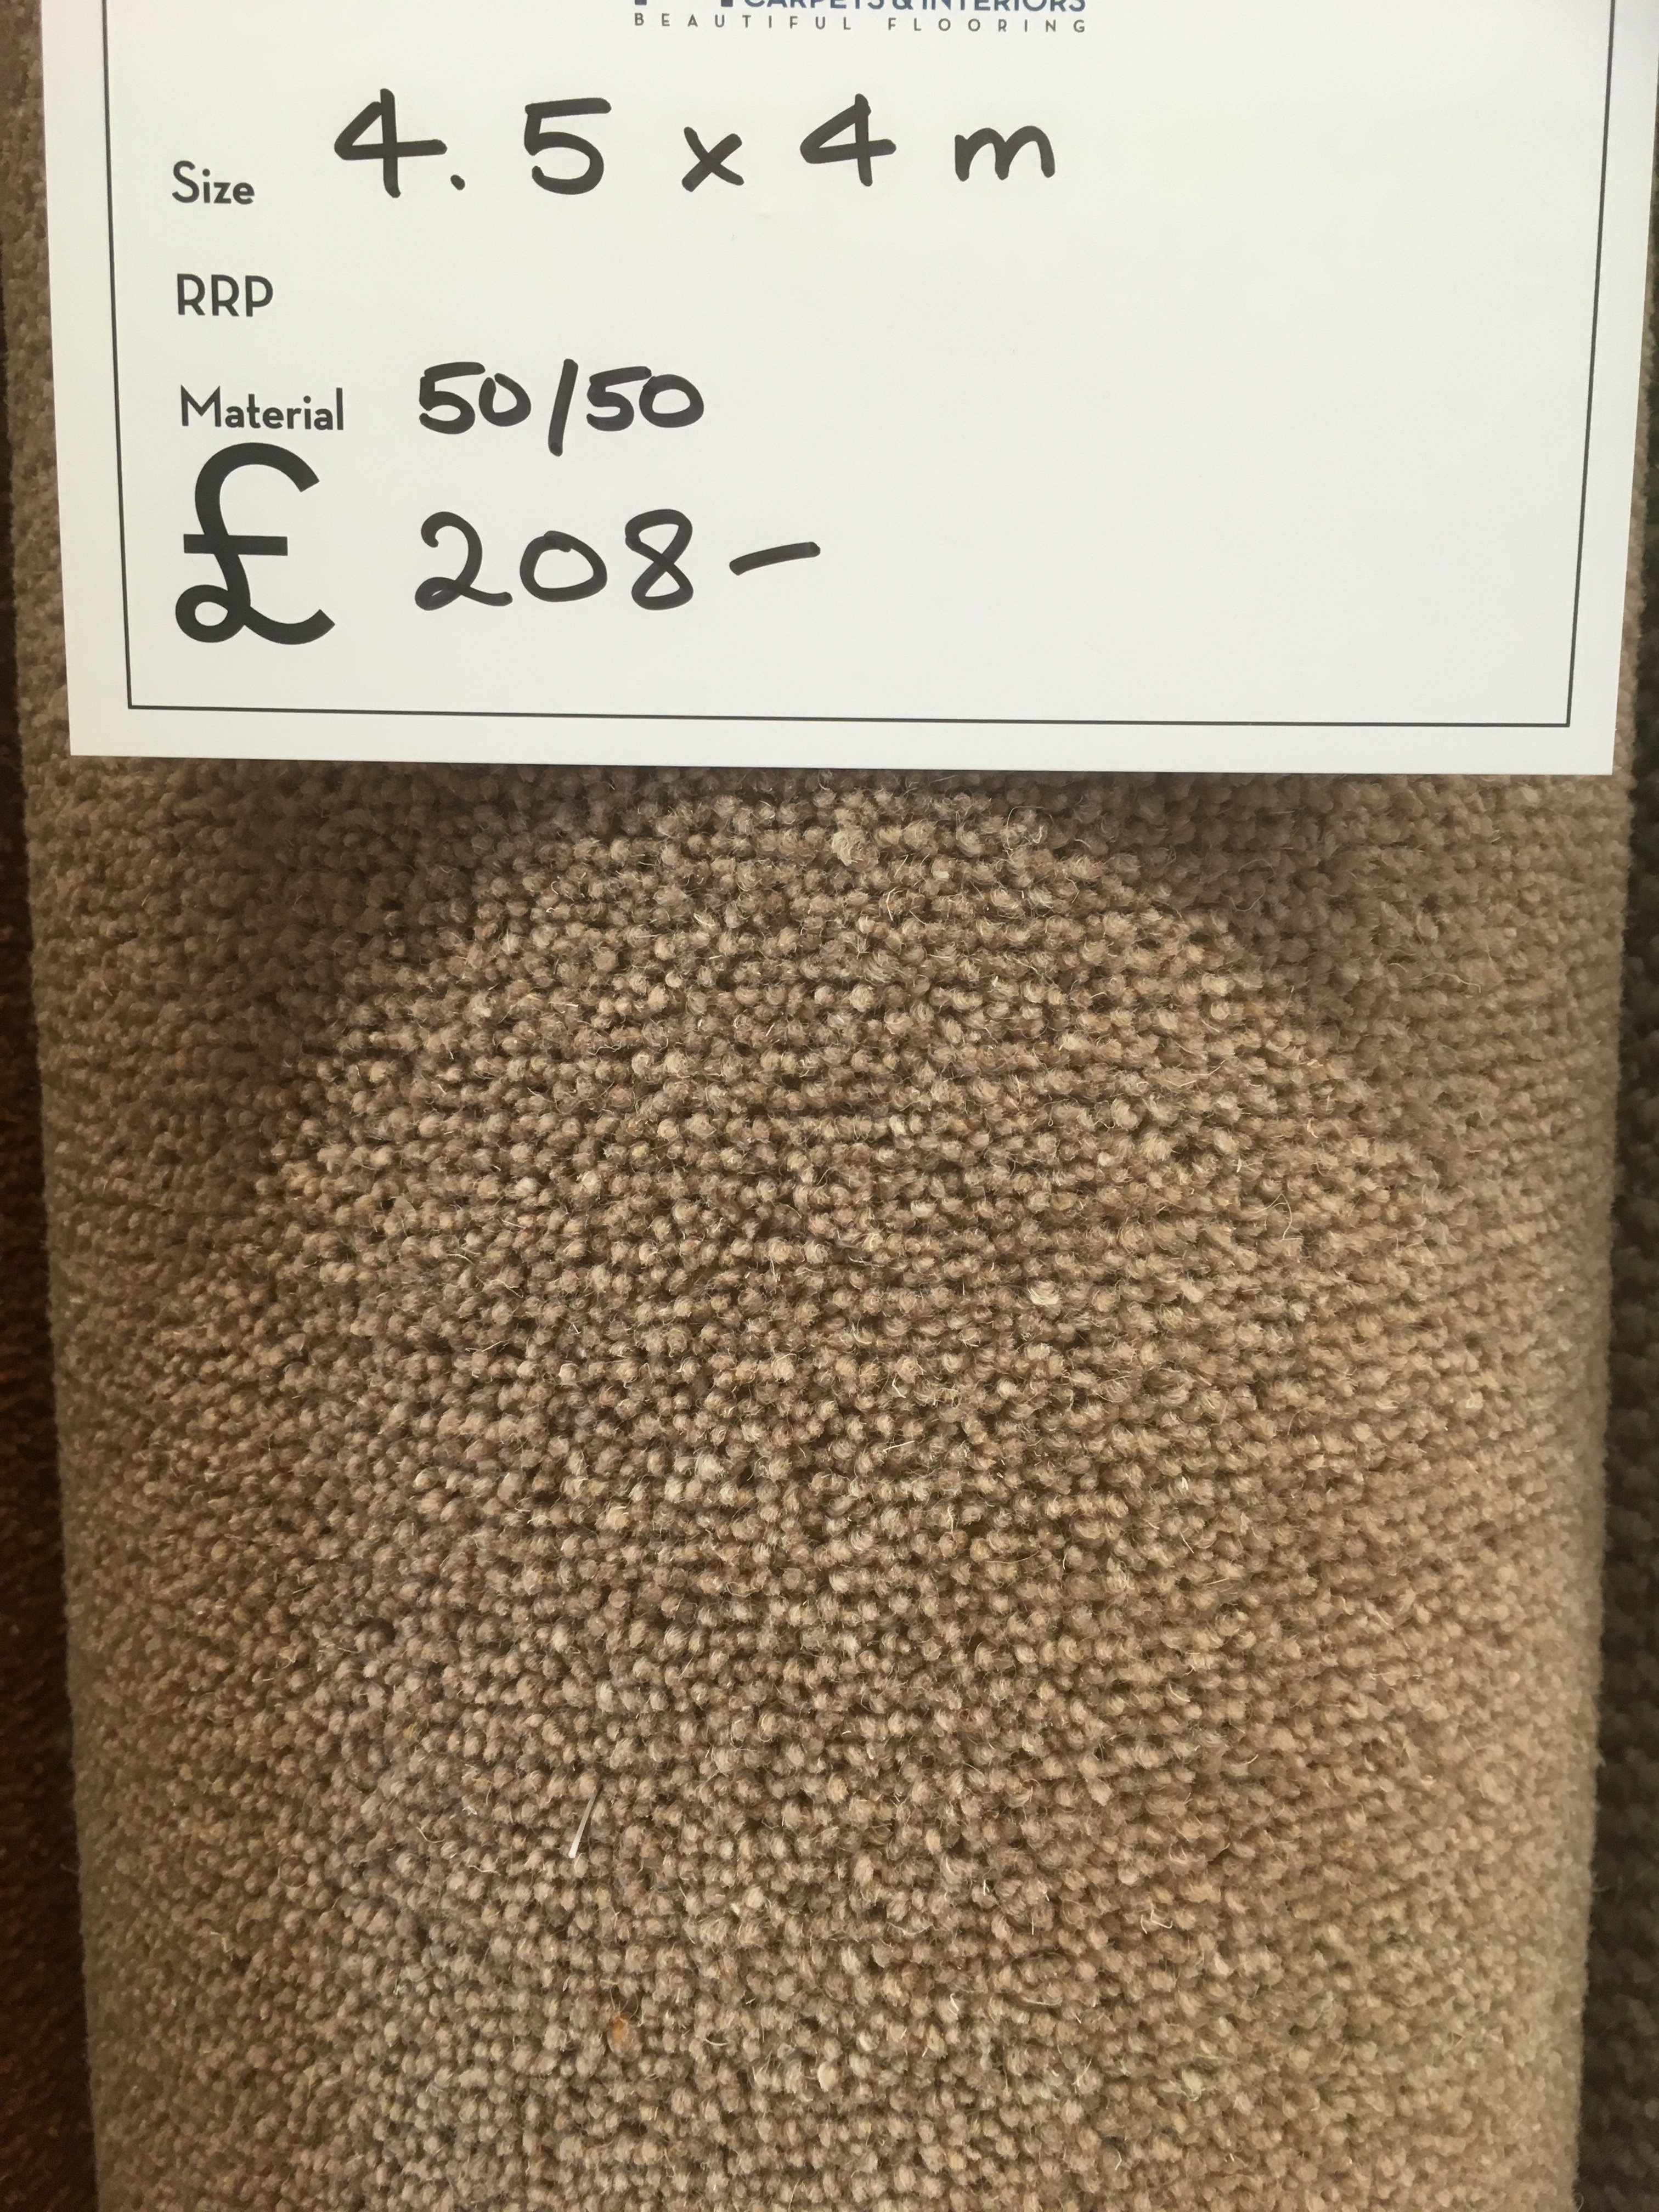 Pale Brown 50% Wool 4.5 x 4 m